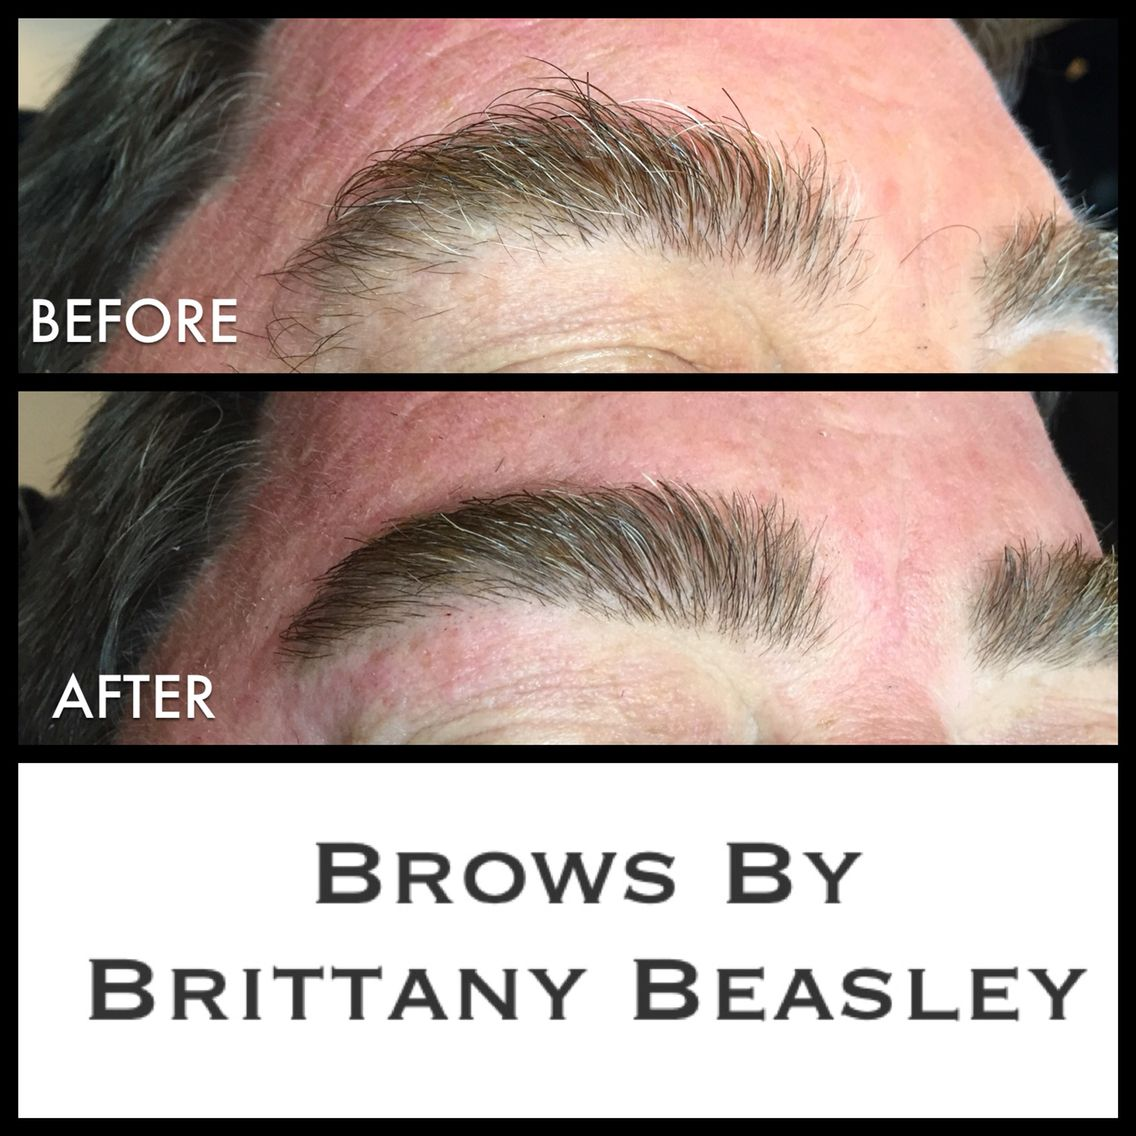 Guys need some brow shaping too am I right? He got the works: brow tint, wax, trim, and tweeze.